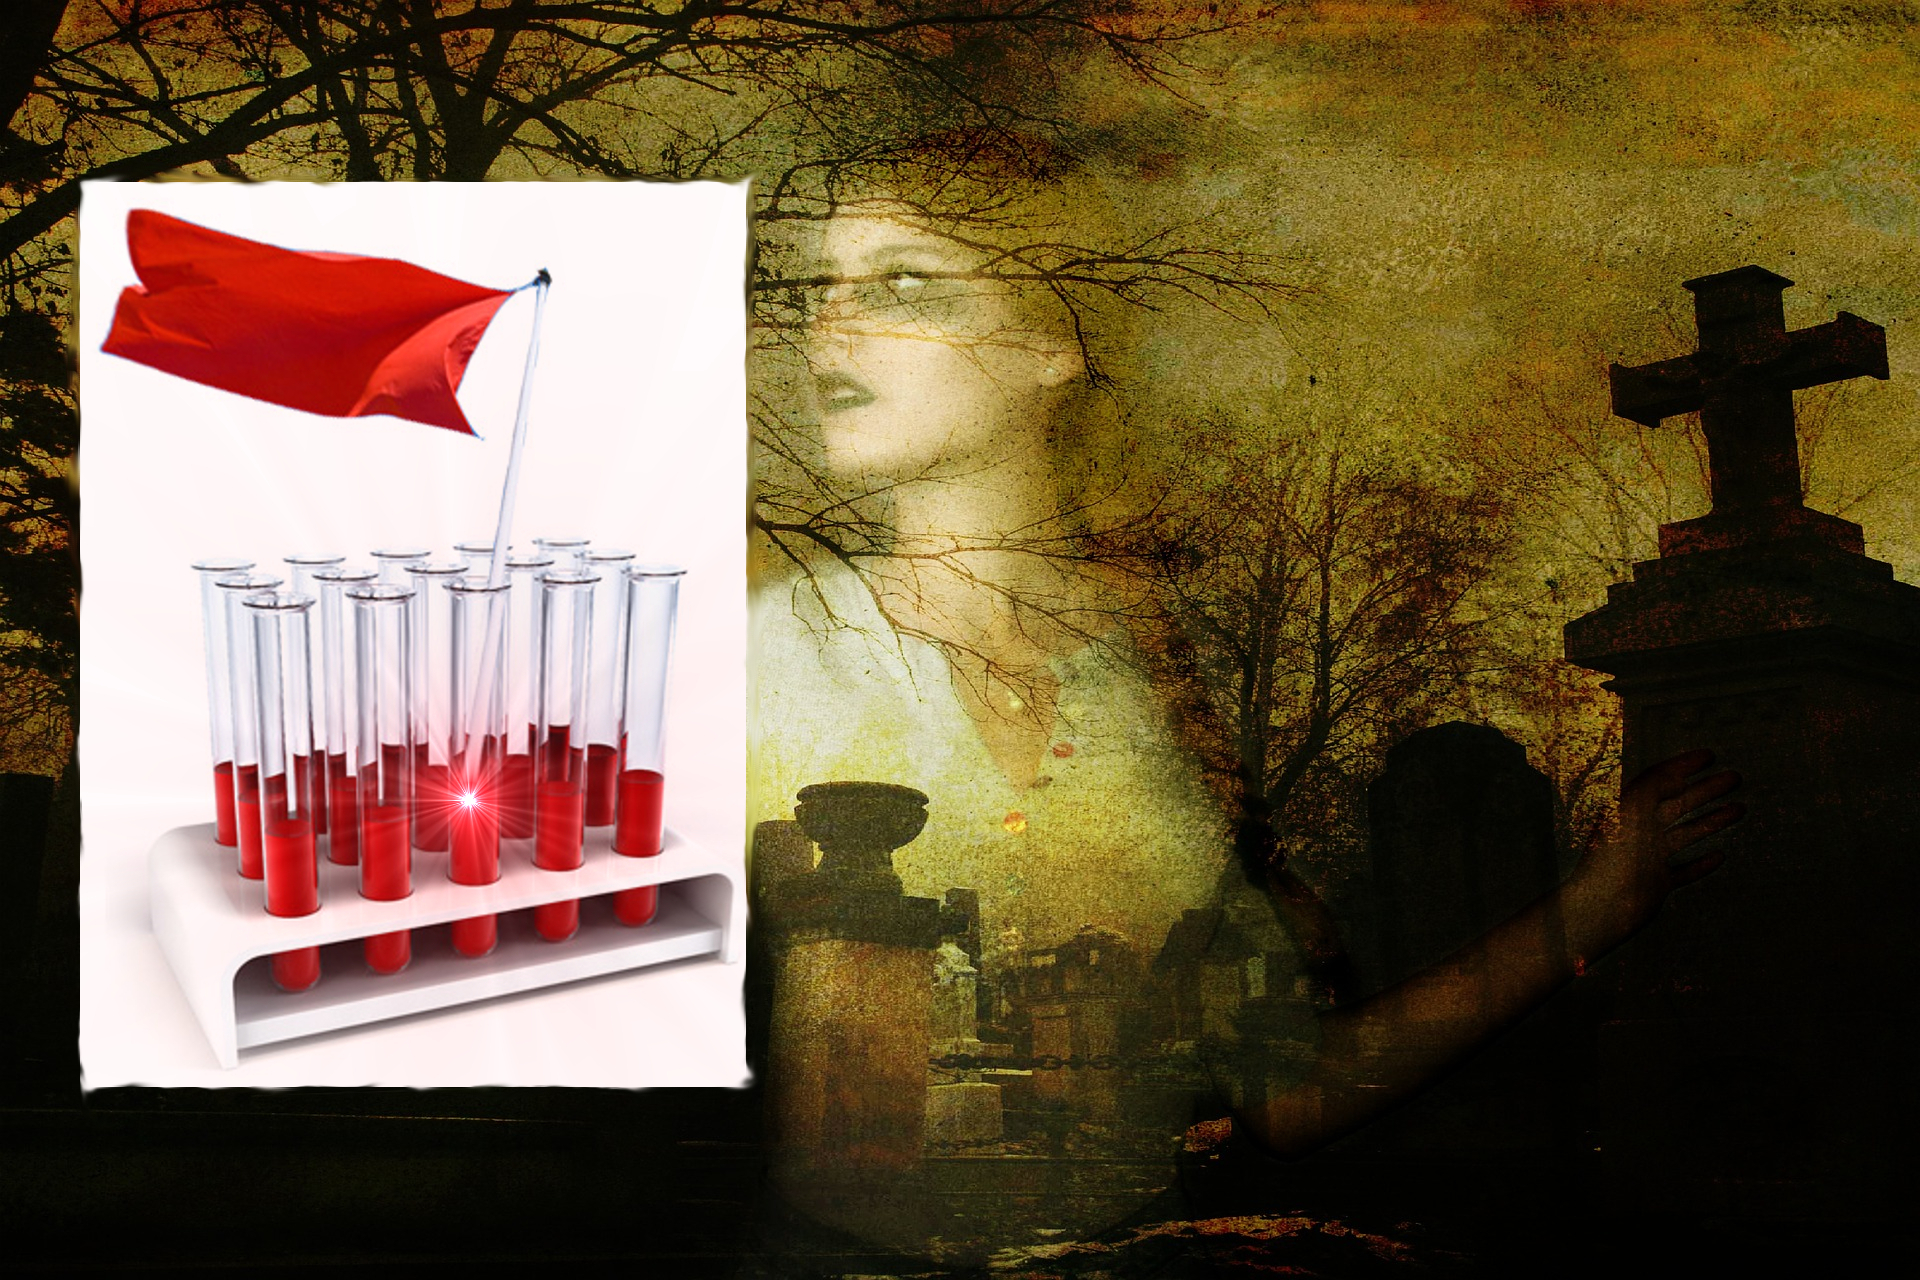 Do Vampires Prefer A Certain Type Of Human Blood?